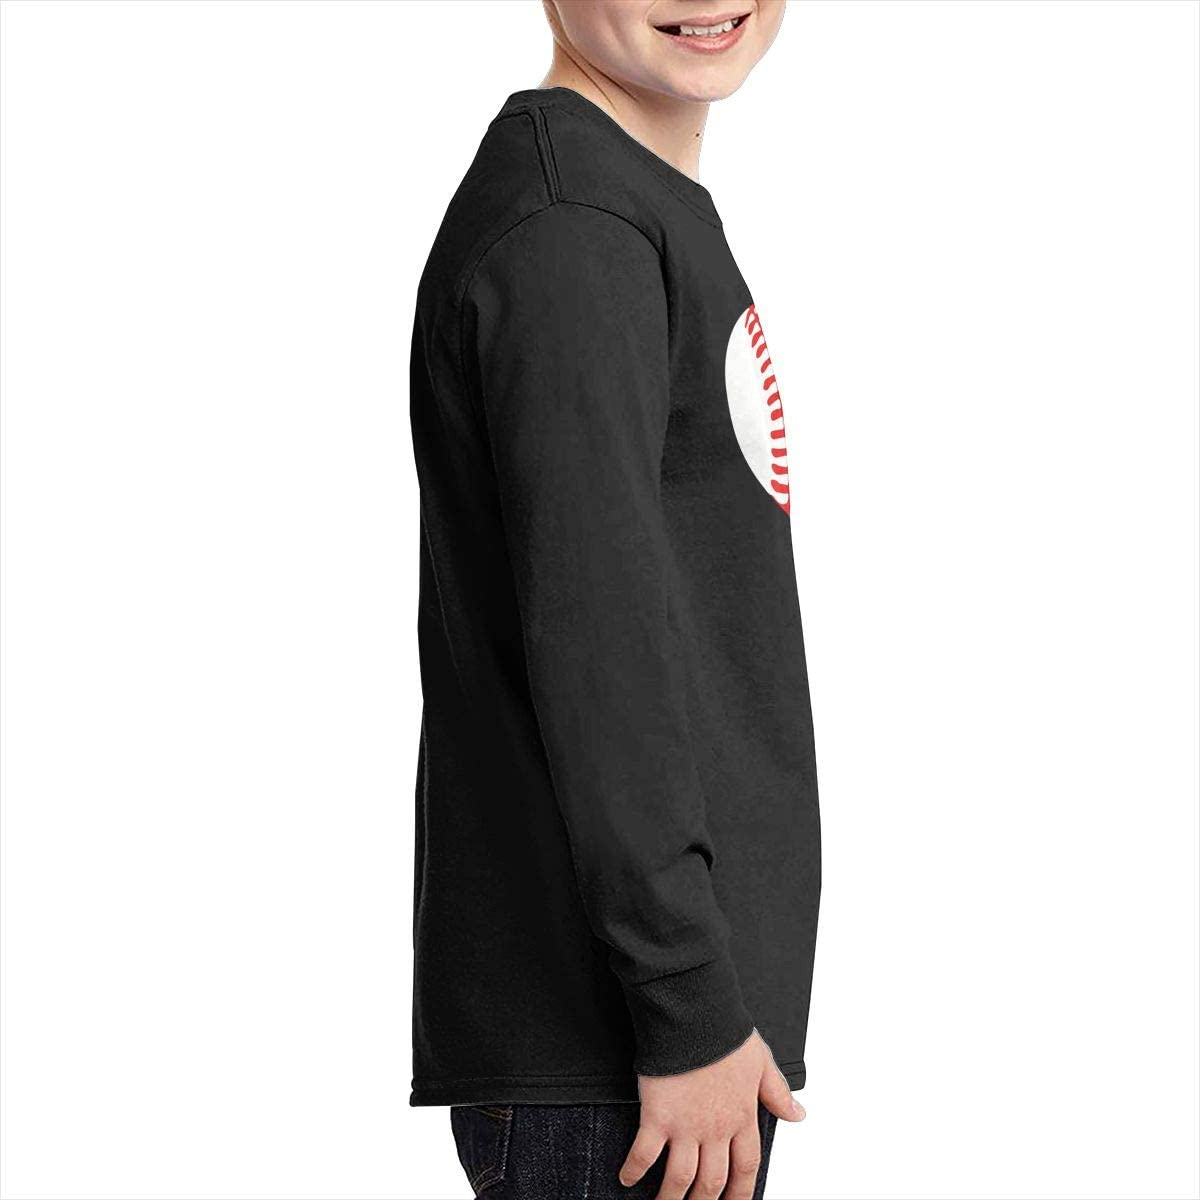 Teenagers Teen Girl Baseball Softball Printed Long Sleeve 100/% Cotton Tops